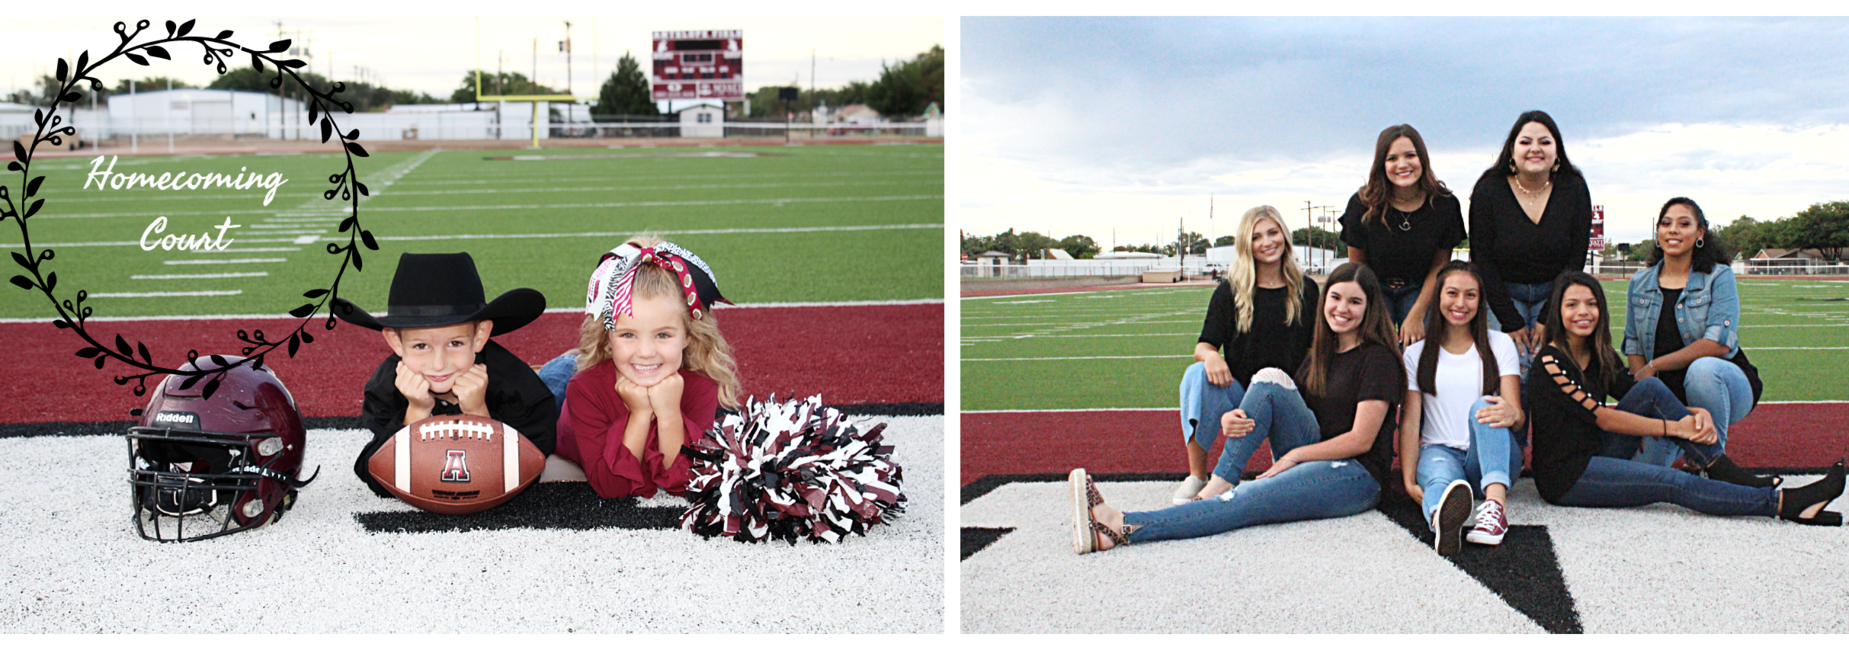 Homecoming court pose on football field